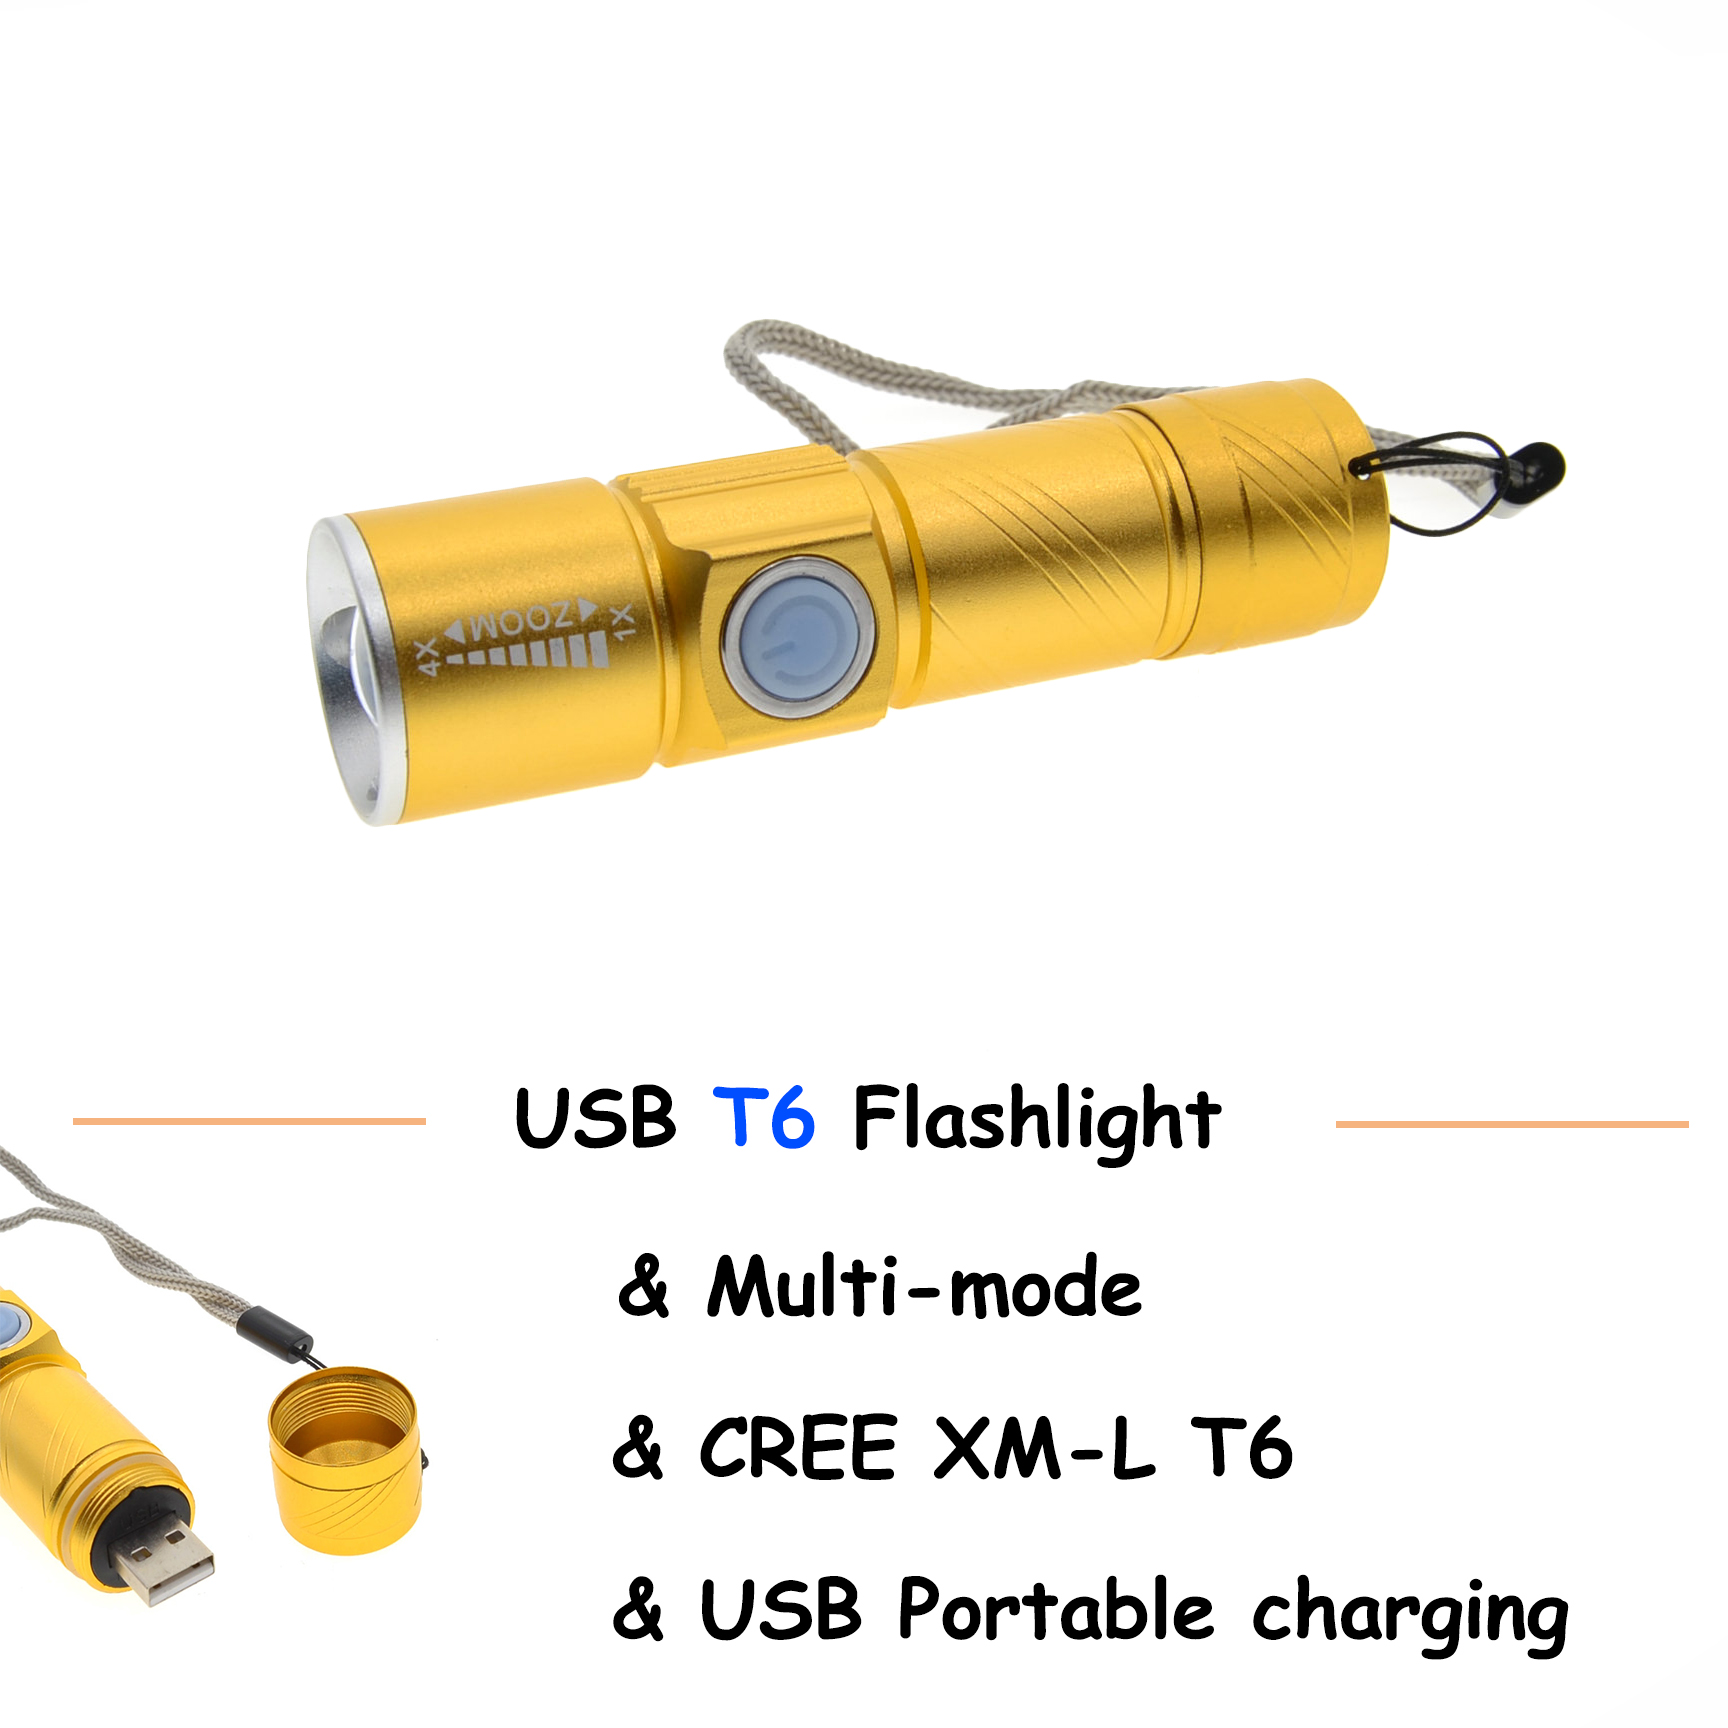 LED Flashlight USB Handy Powerful Rechargeable Torch usb Flash Light Bike Pocket LED Zoomable Lamp usb rechargeable led flashlight cree xml t6 powerful zoom tactical mini flash light bike hunting torch 3 modes waterproof lamp